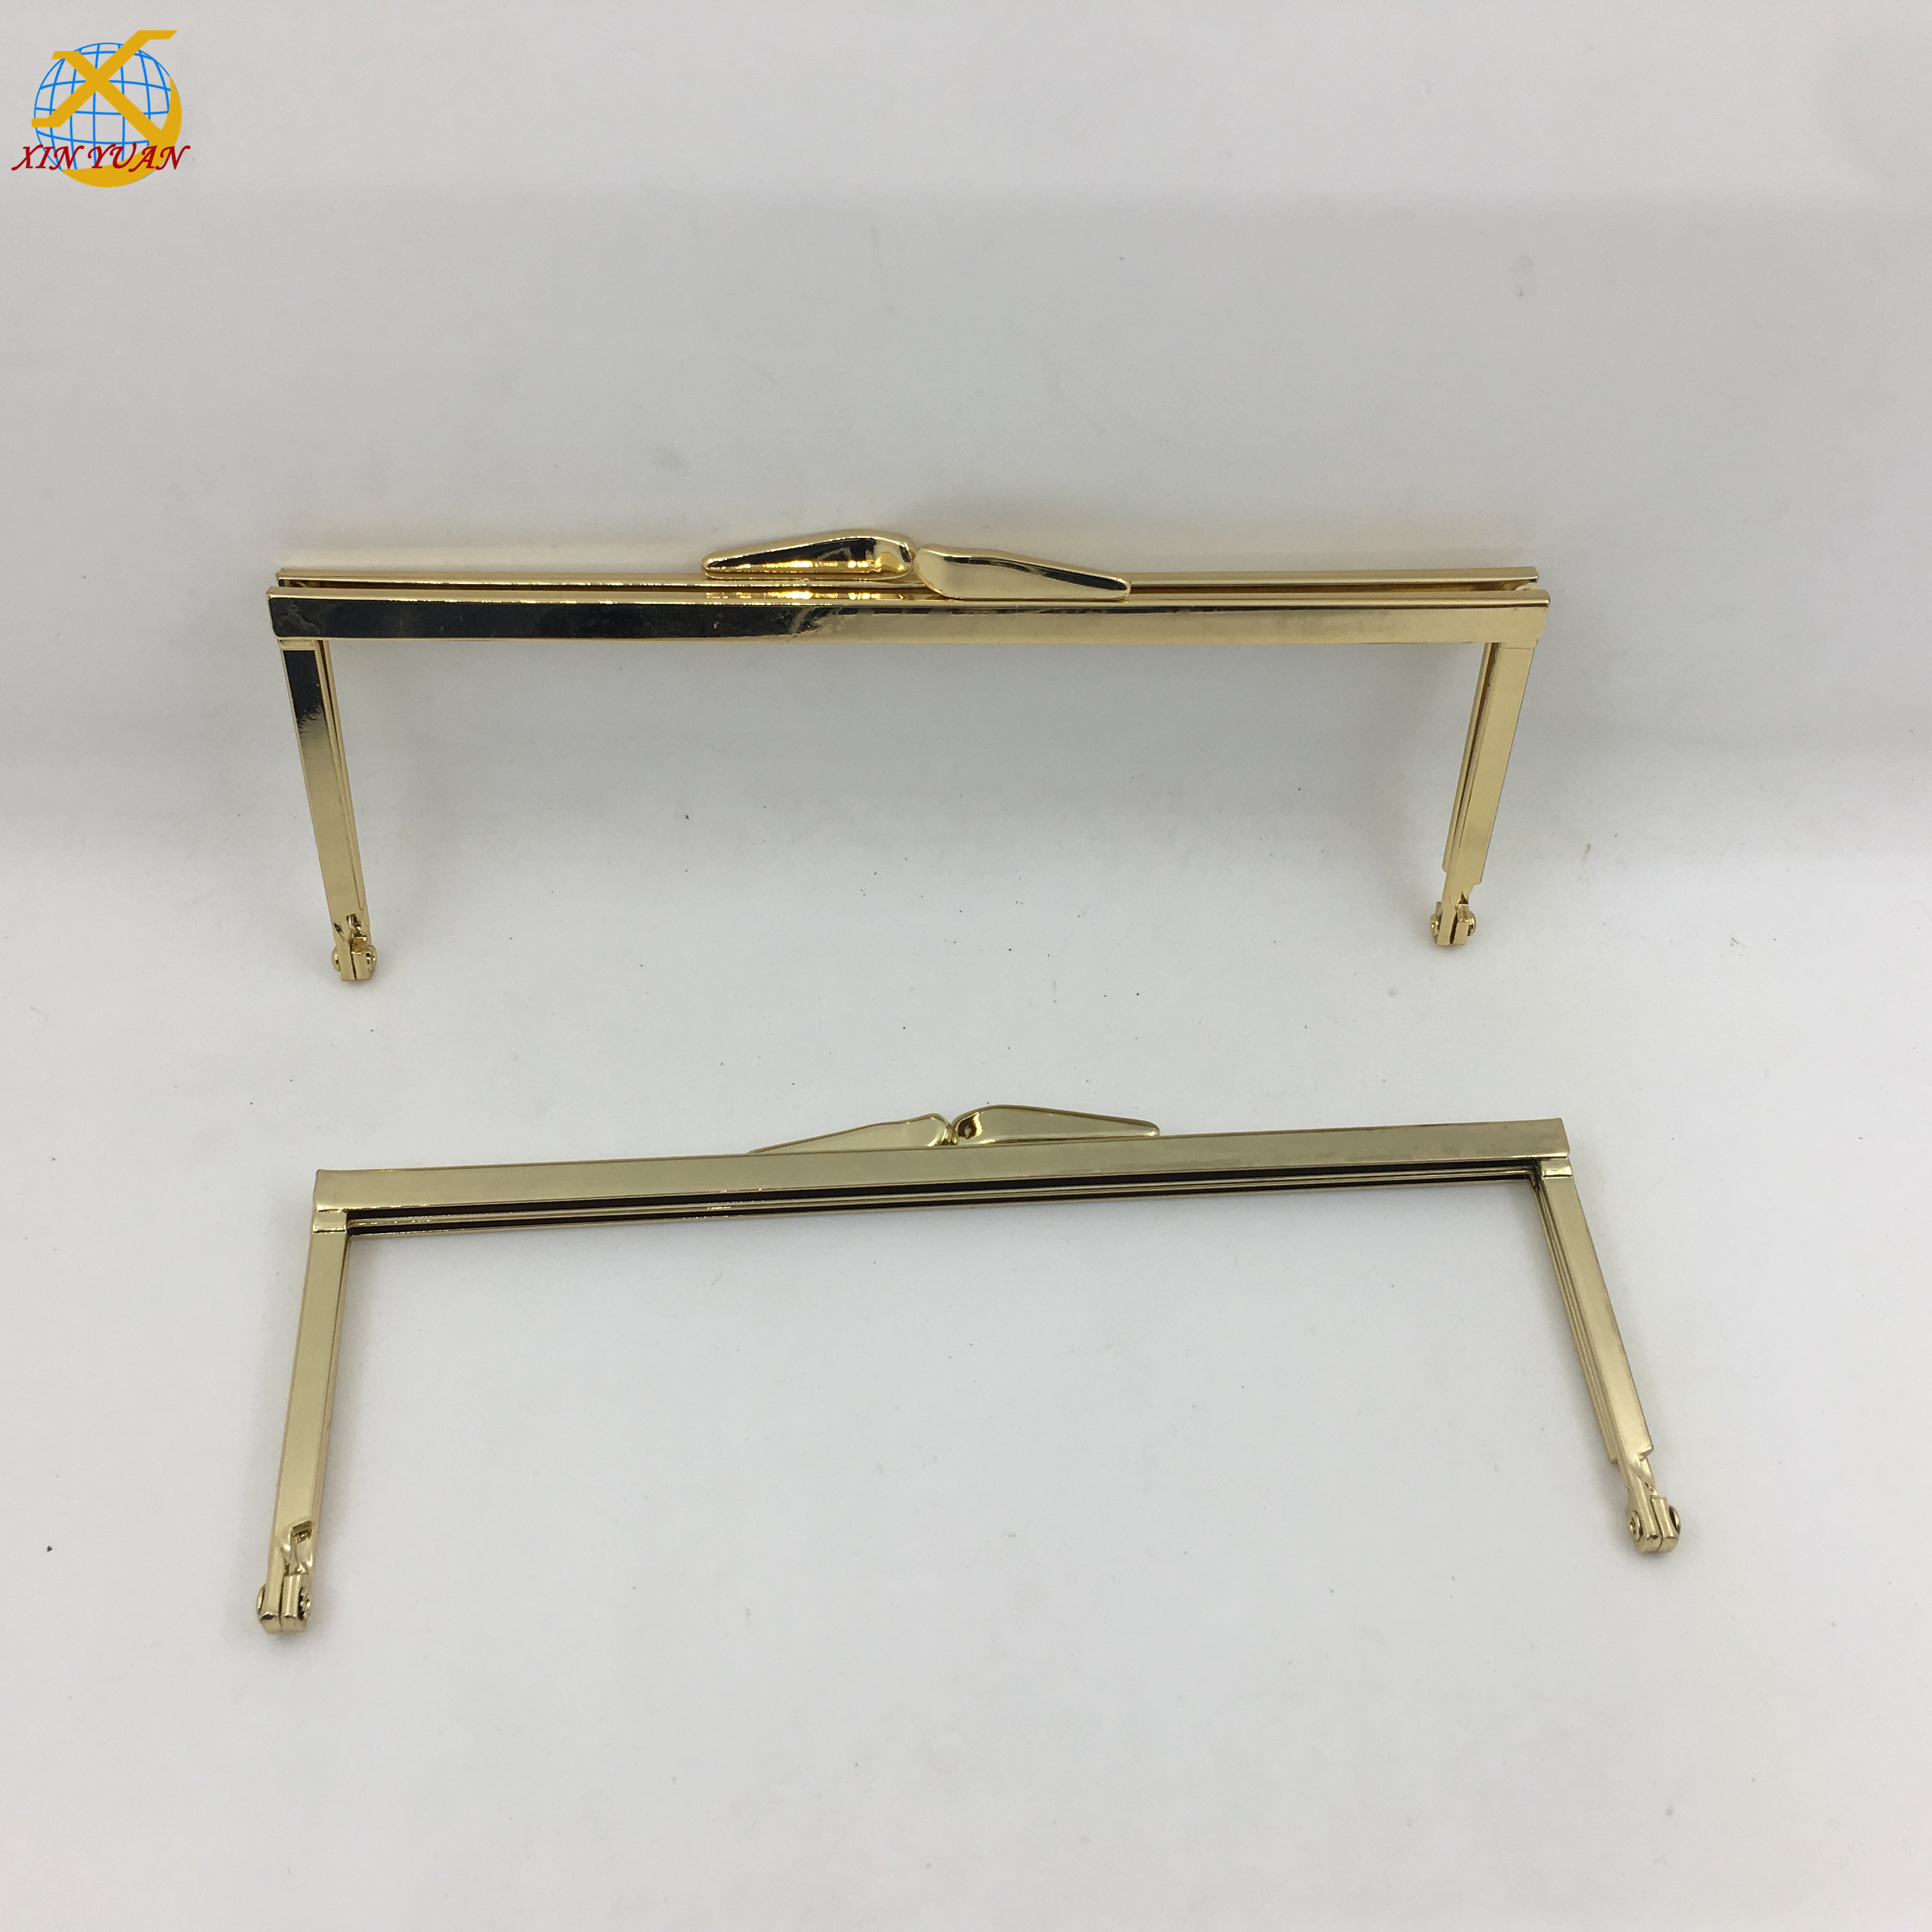 17.8*6.5cm Golden Bag Metal Accessories Bag Accessories Metal <strong>Hardware</strong>